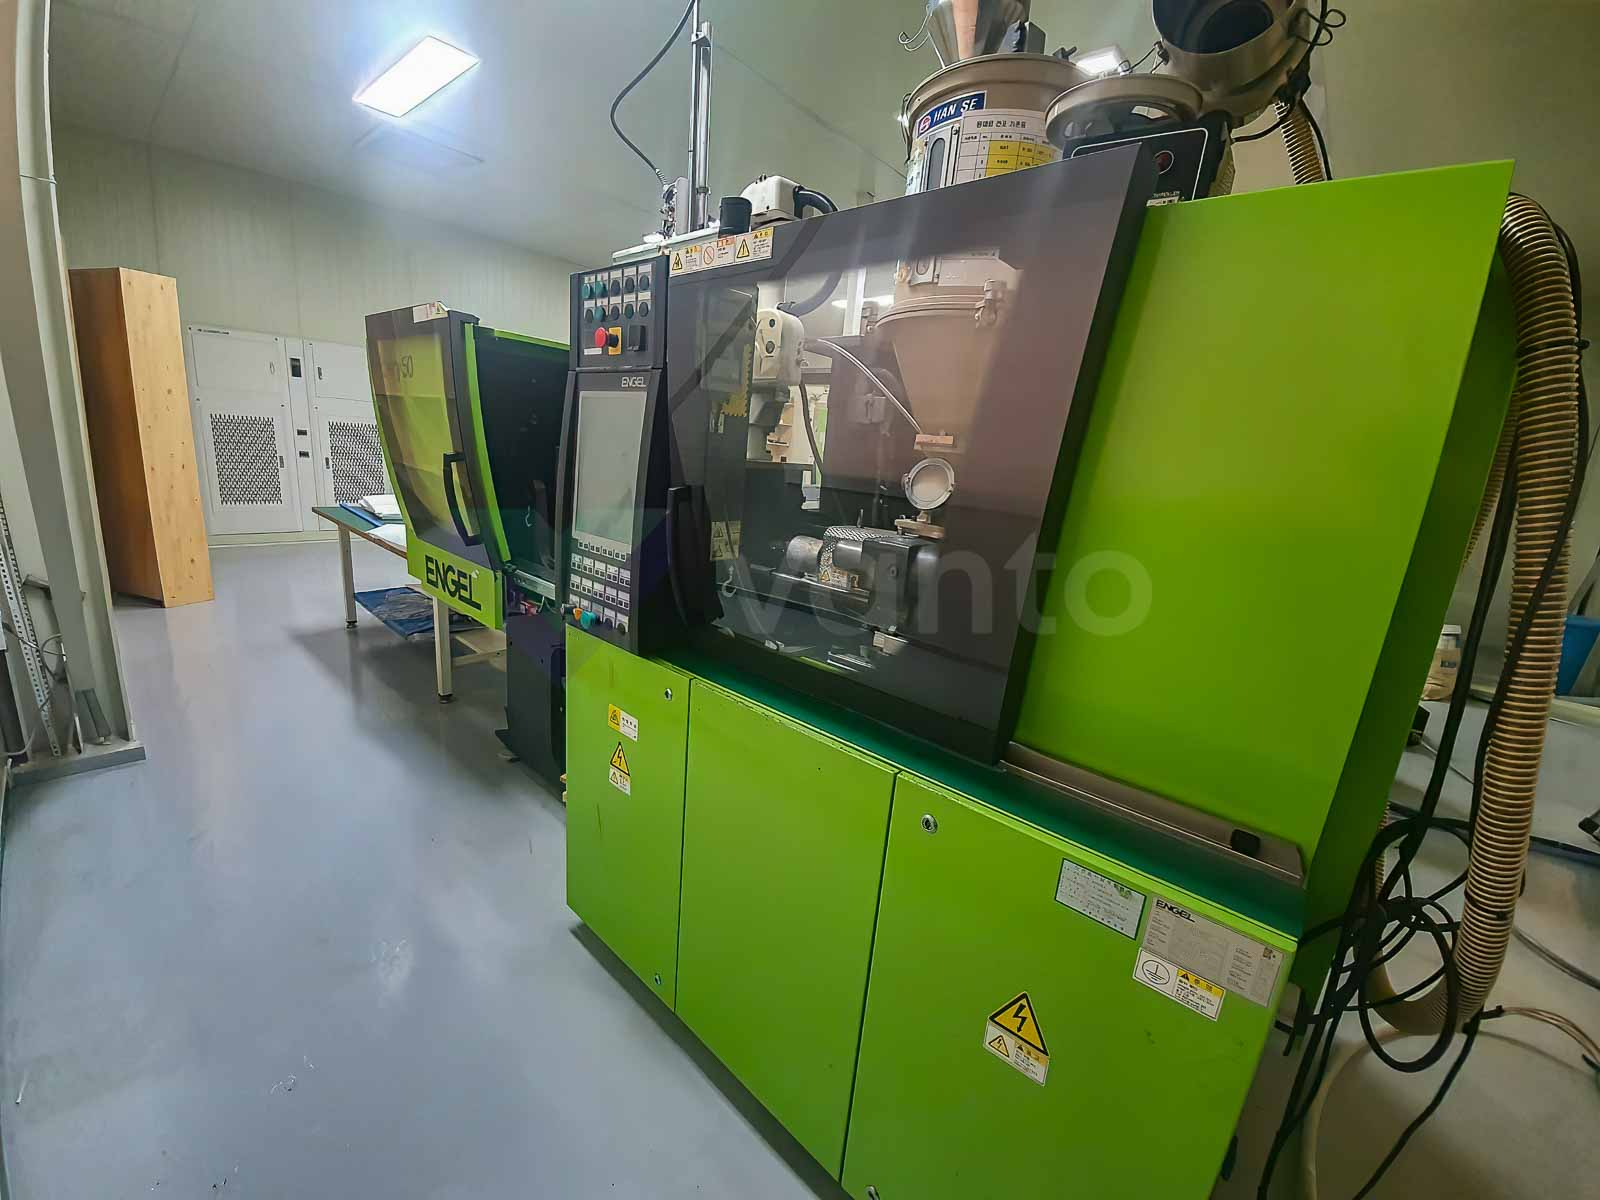 ENGEL VICTORY VC 80 / 50 TECH PRO 50t injection molding machine (2010) id10540